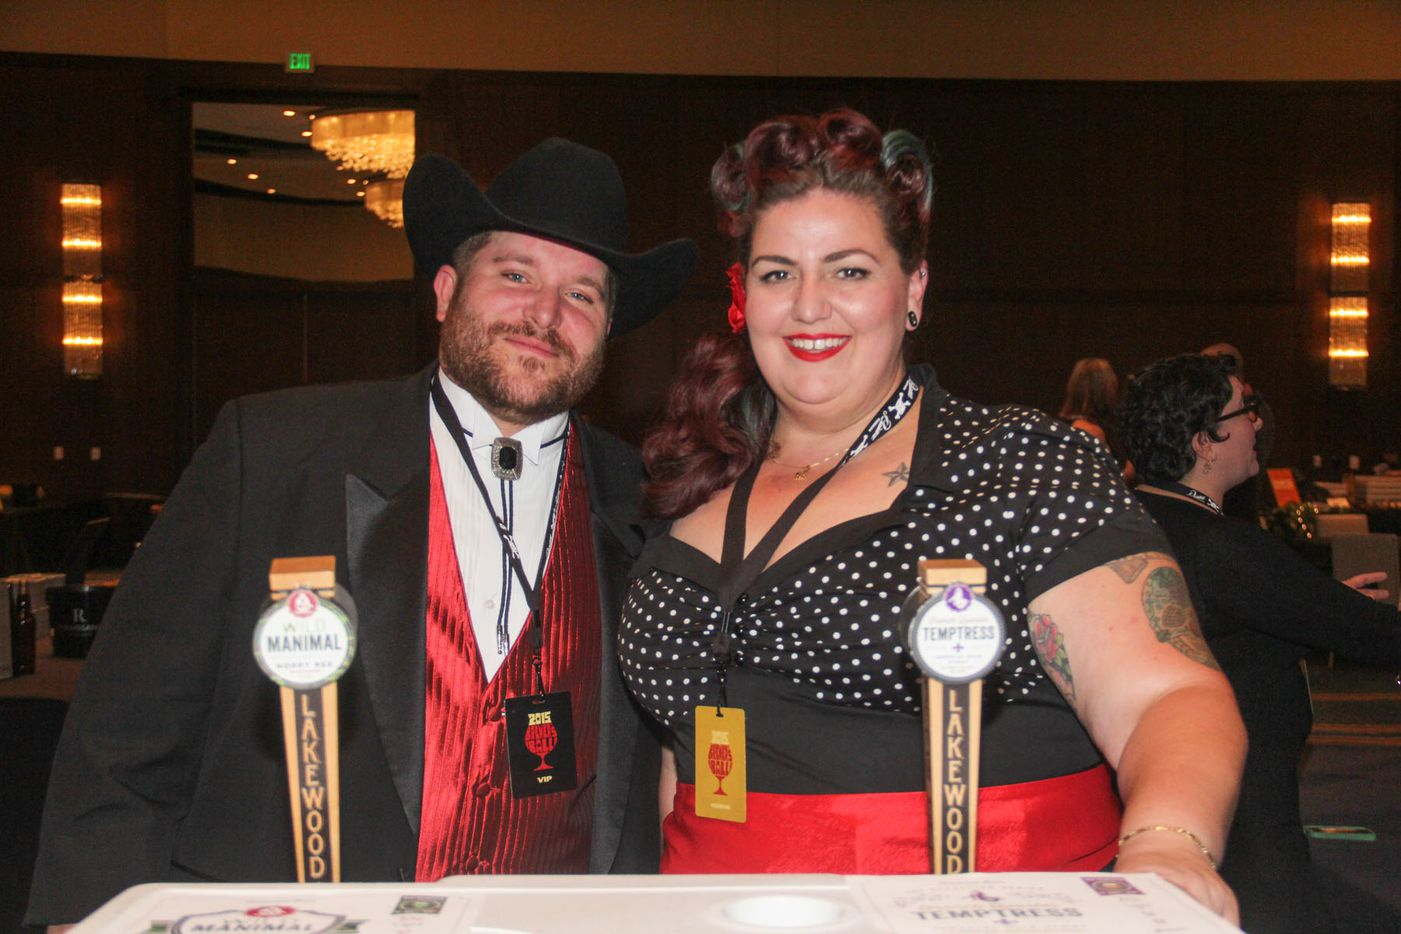 NTX Beer Week held its Second Annual Brewers Ball at the Renaissance Dallas Hotel on November 13, 2015. Jeremiah Wallis and Gretta Leverett.